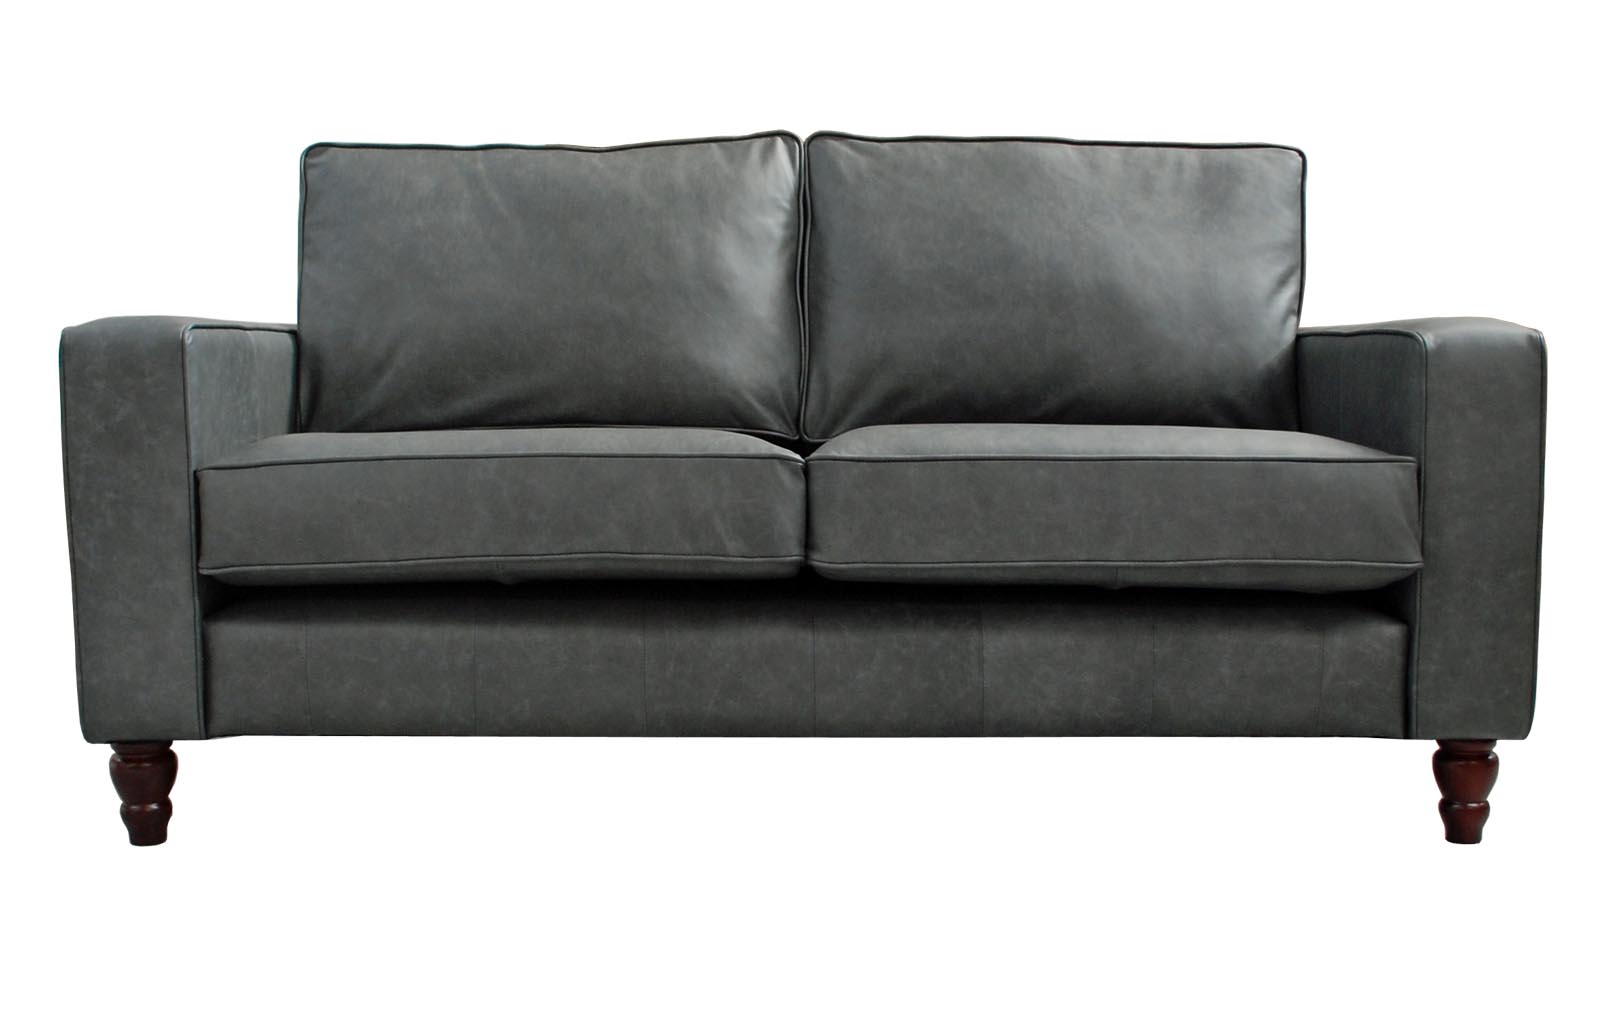 derry contemporary leather sofas handmade in manchester. Black Bedroom Furniture Sets. Home Design Ideas